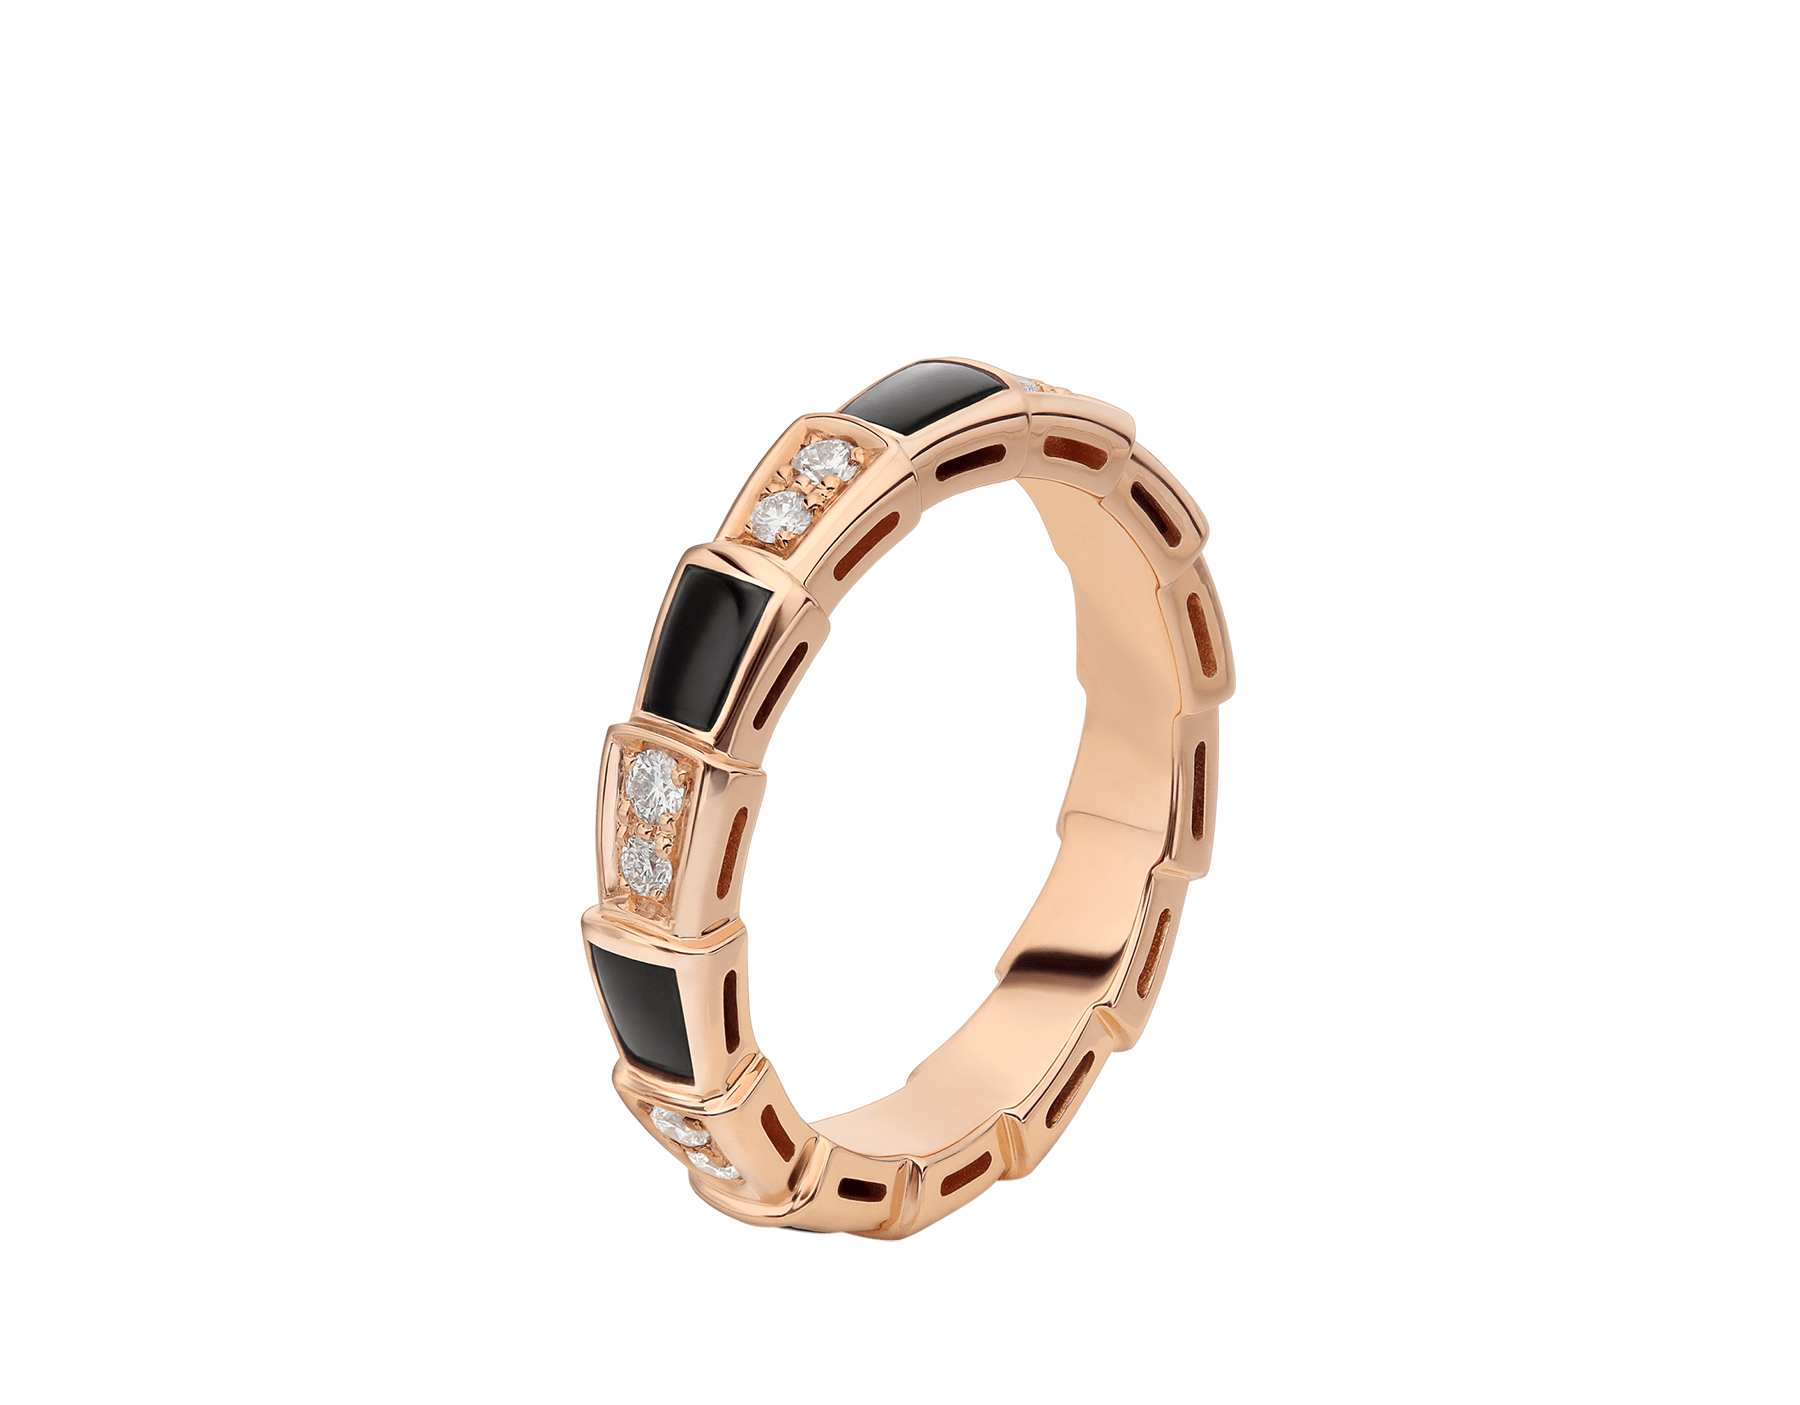 Serpenti Viper 18 kt rose gold thin ring set with onyx elements and pavé diamonds. AN858710 image 1